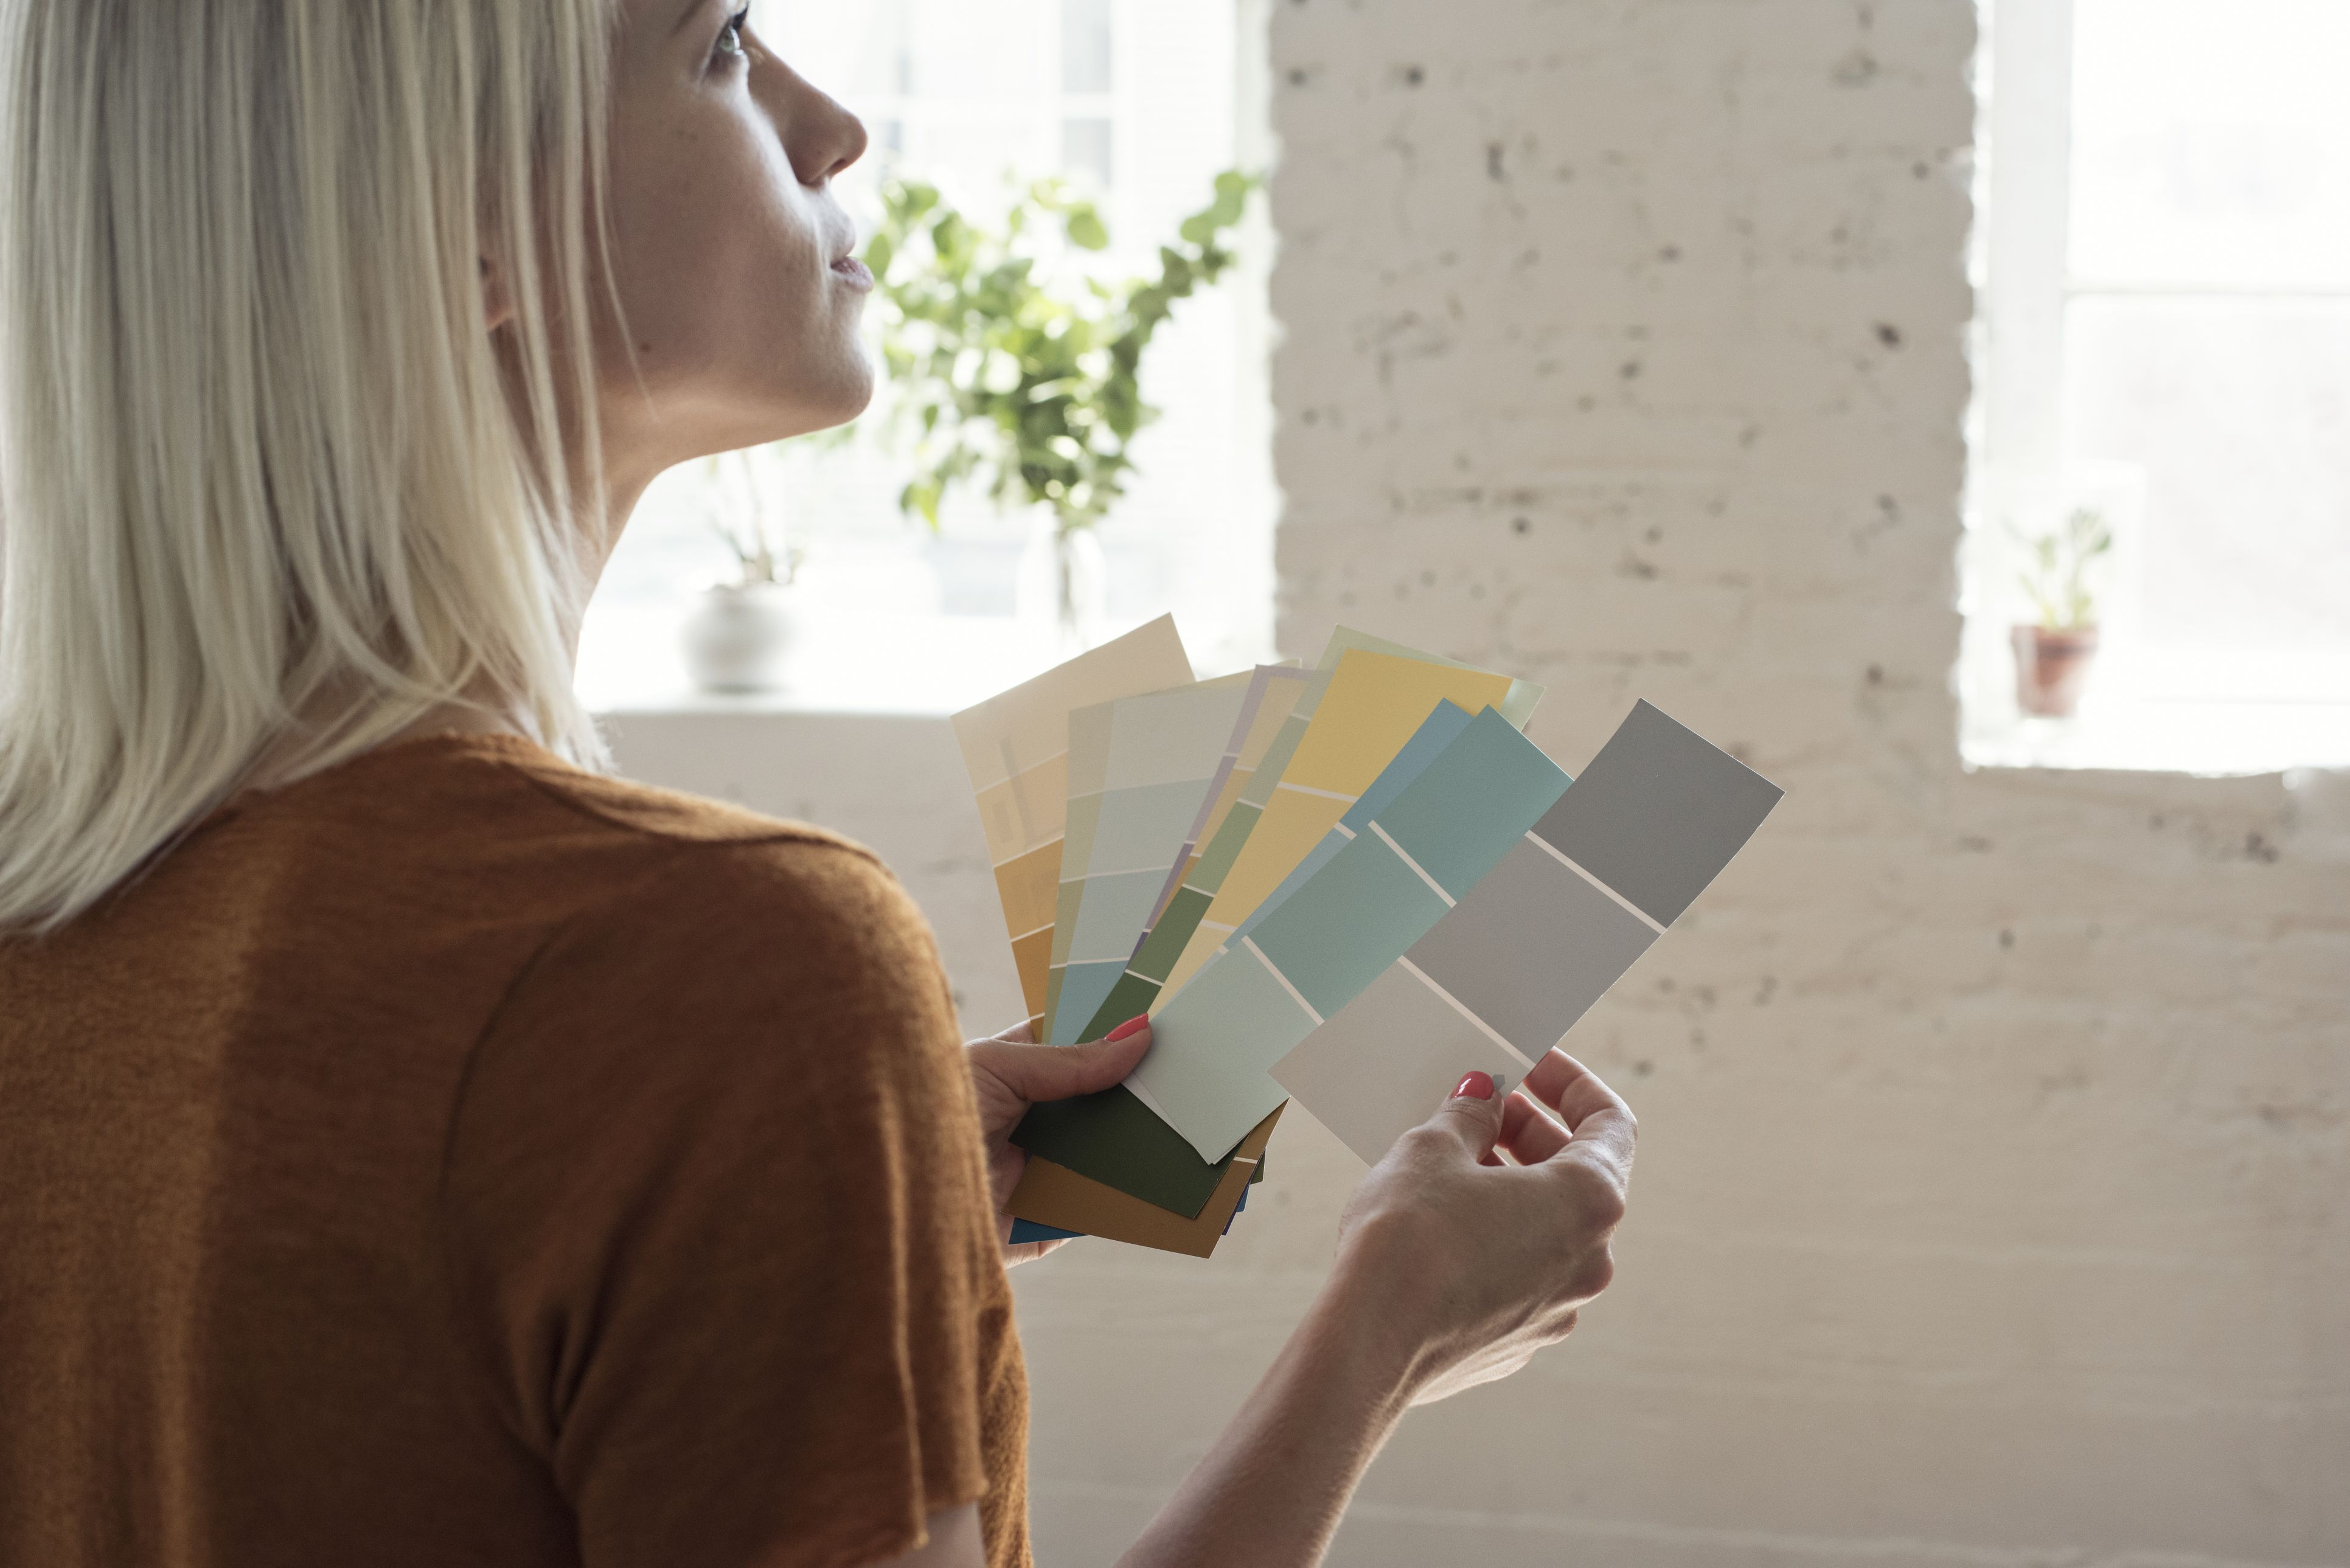 Home depot paint buying guide what are the best interior paint manufacturers for your home nvjuhfo Choice Image